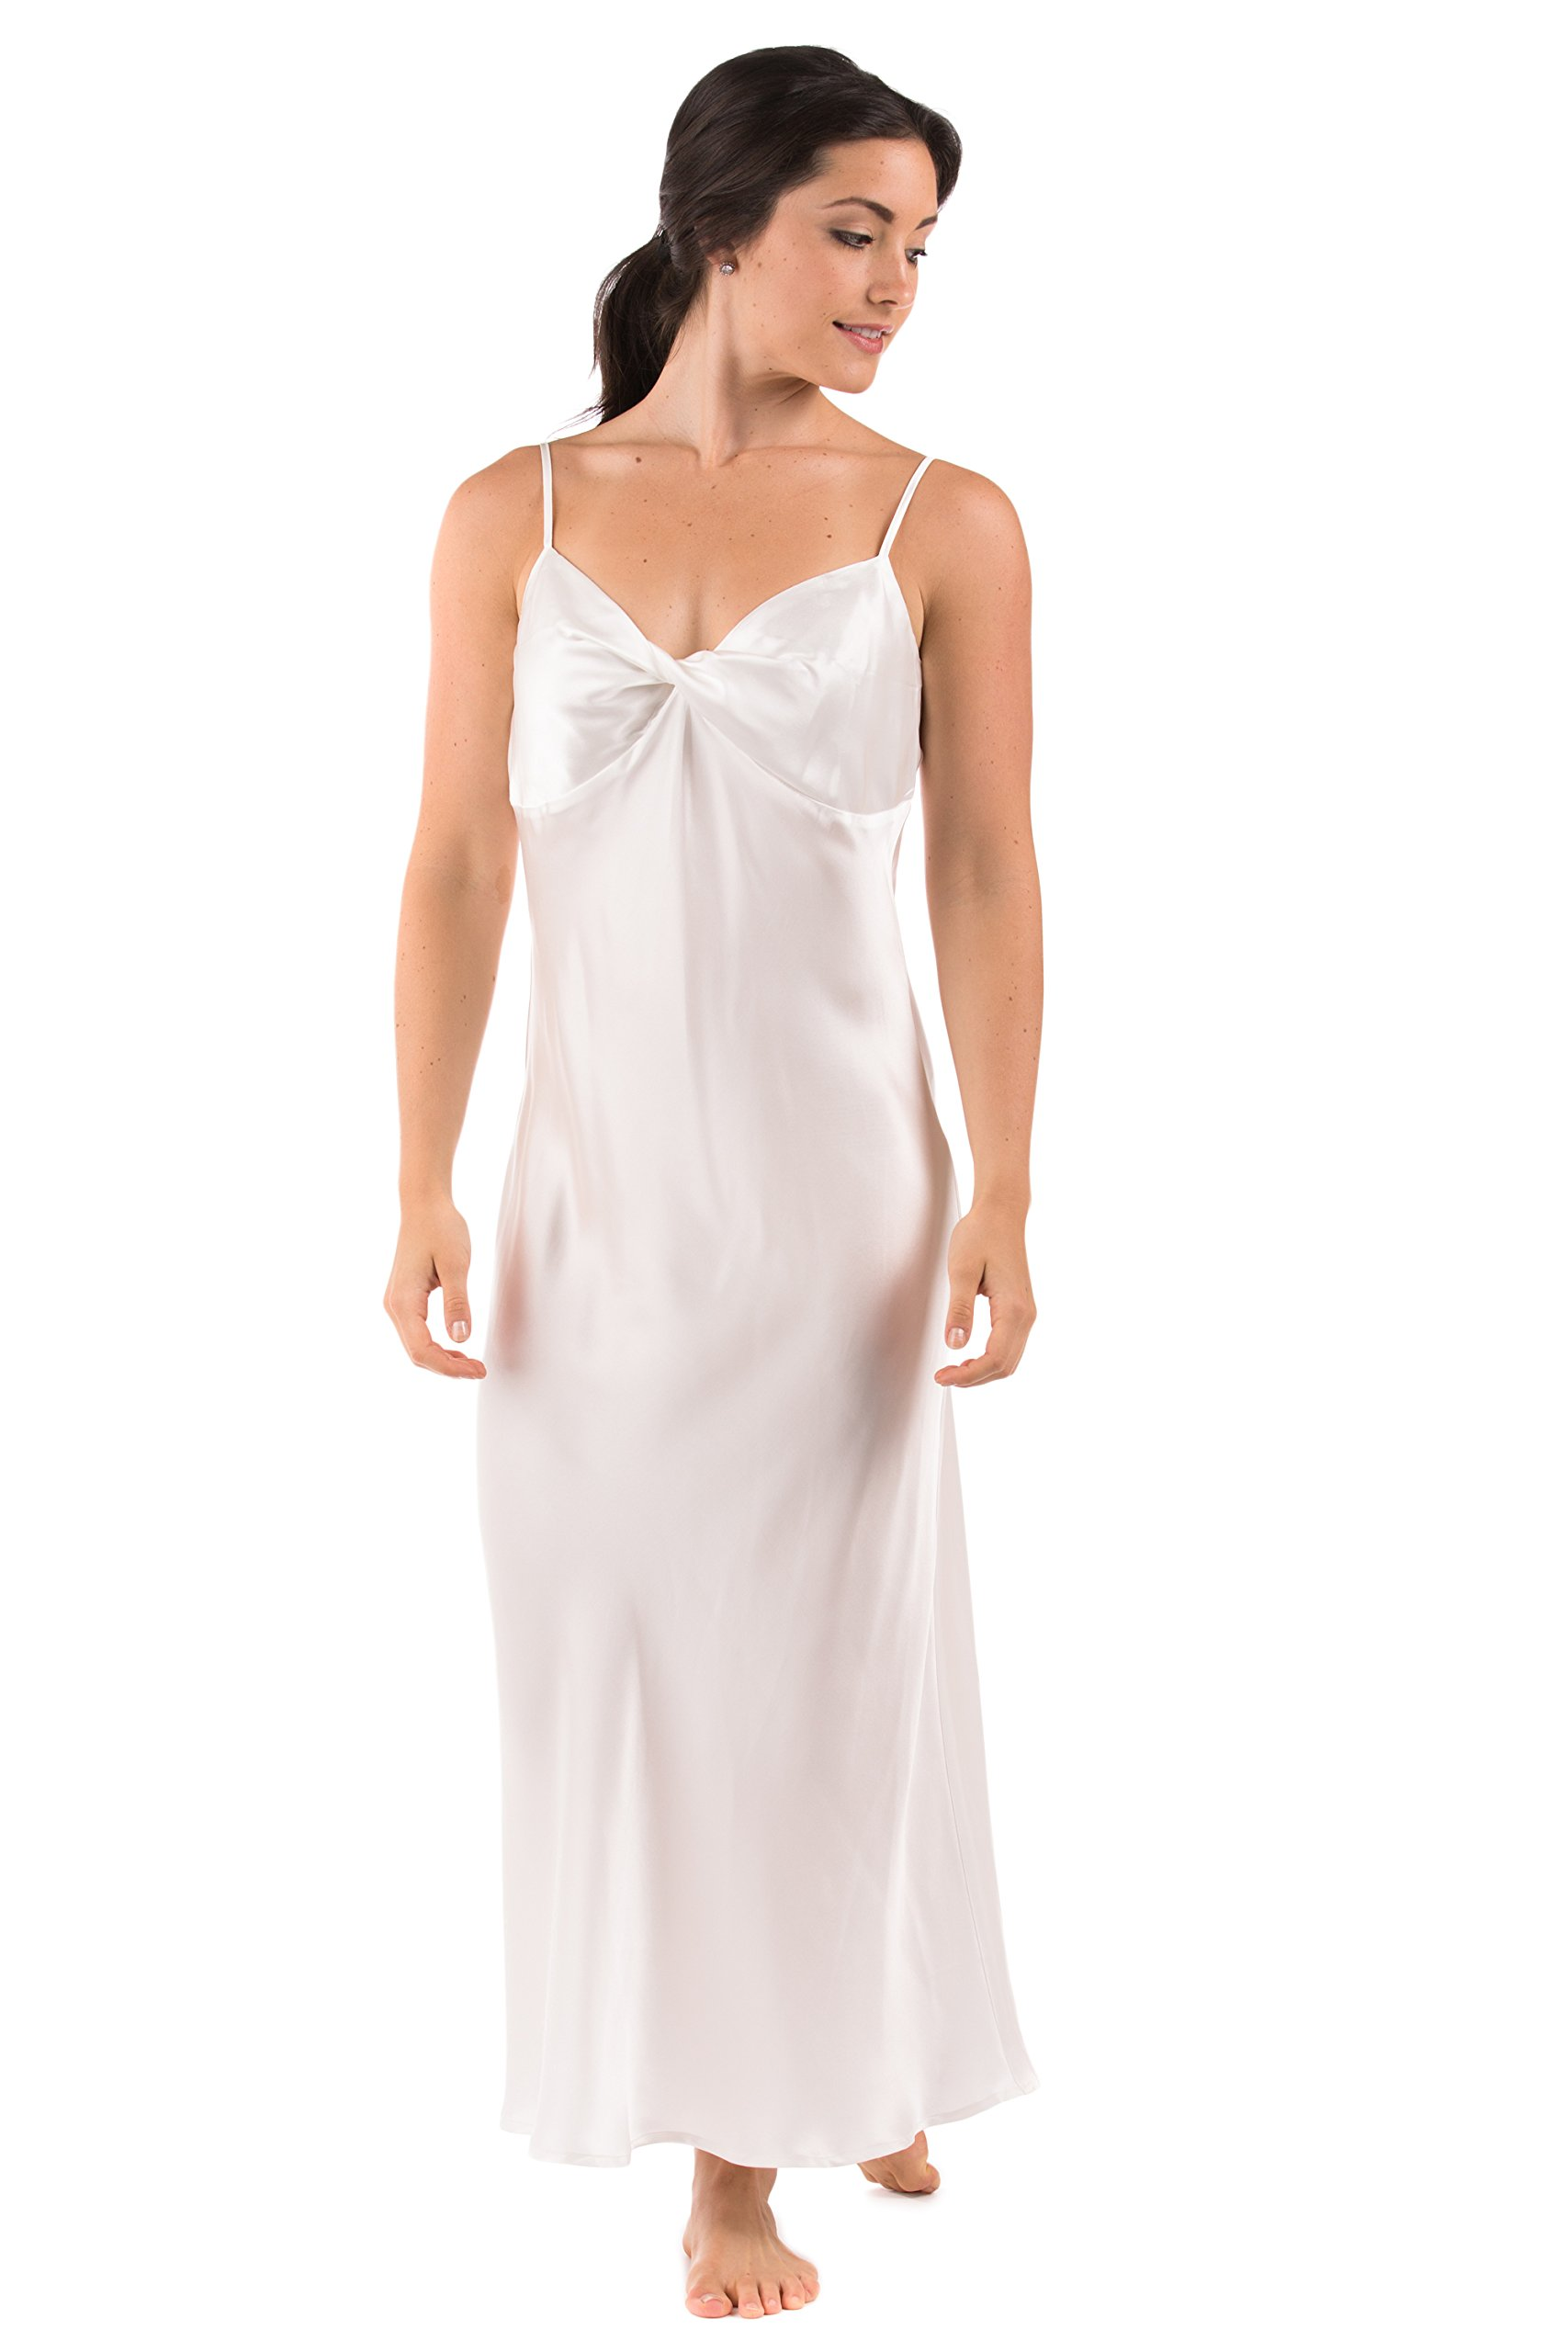 Women's 100% Silk Luxury Nightgown - Sleepwear Gift by TexereSilk (Caviar Noir, Natural White, Medium) Lightweight Sleepwear for Her WS0401-NWH-M